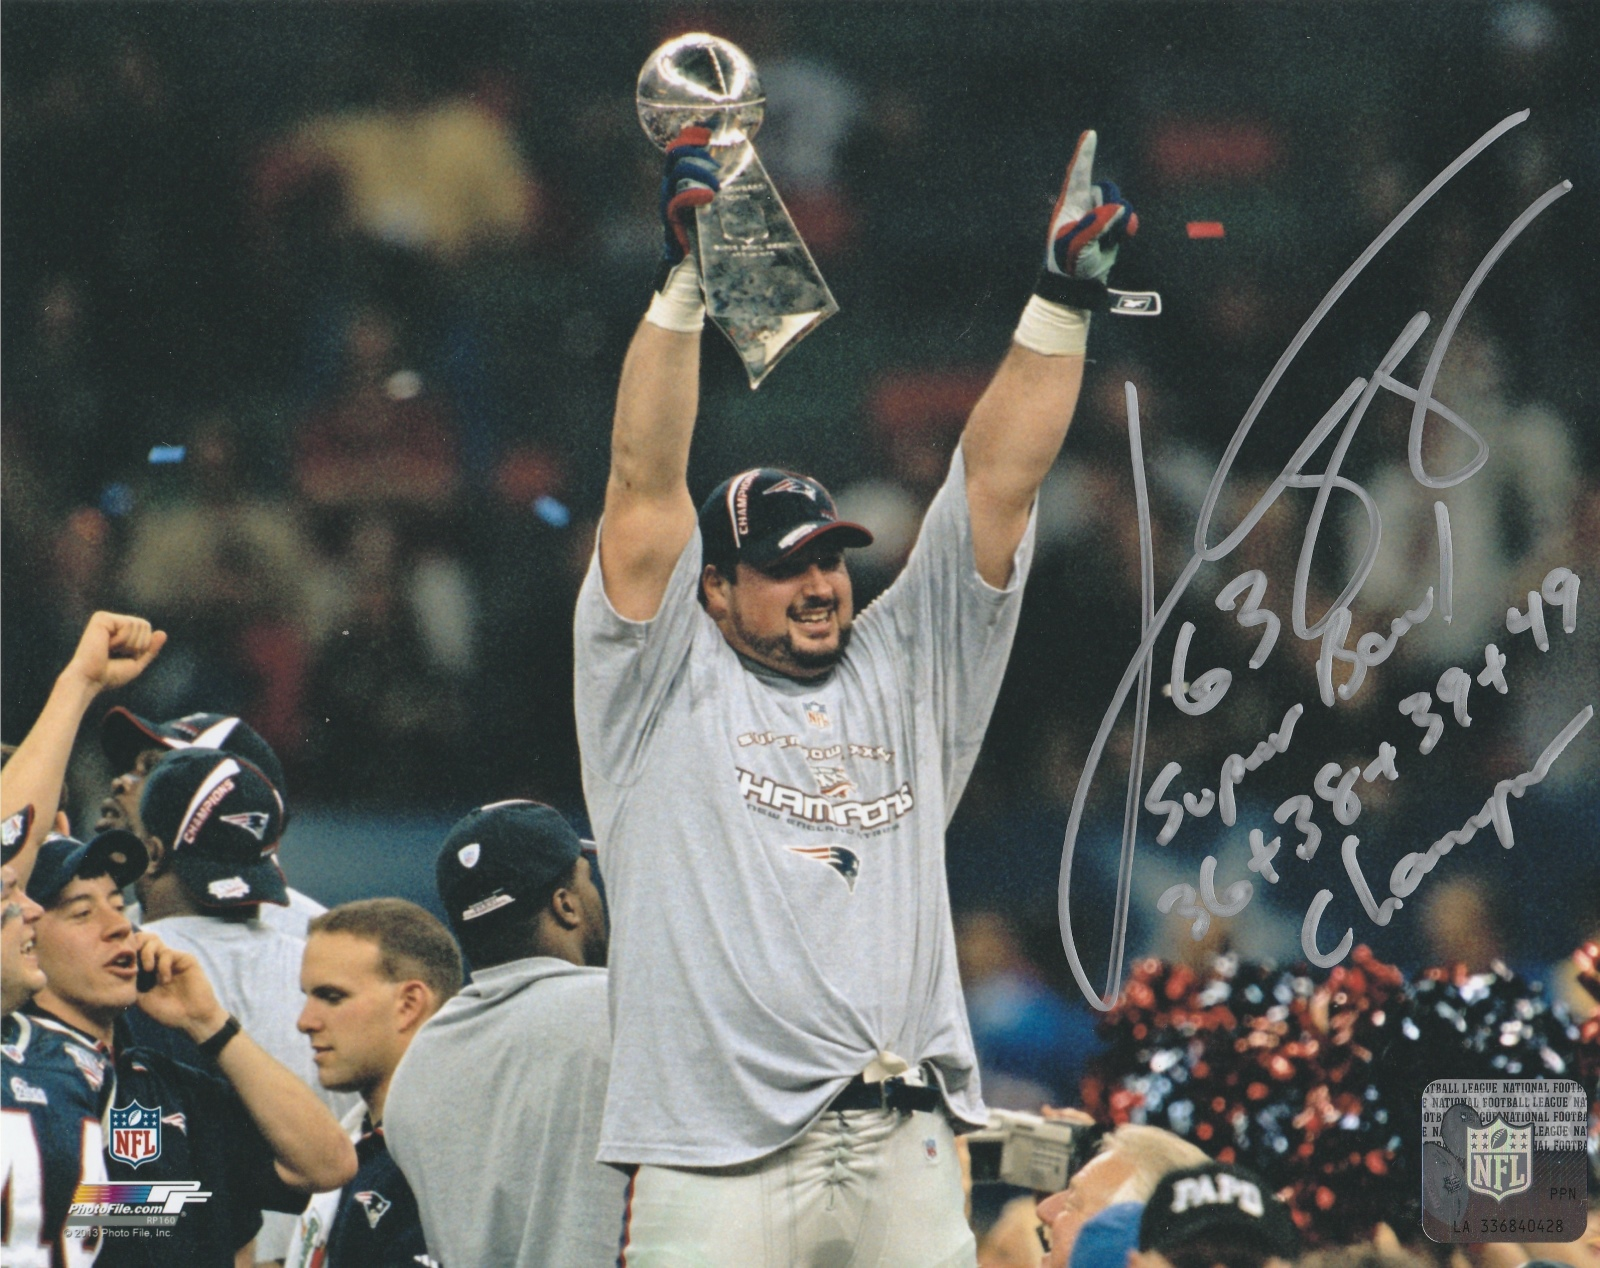 Joe Andruzzi Autograph 8x10 Color photo New England Patriots